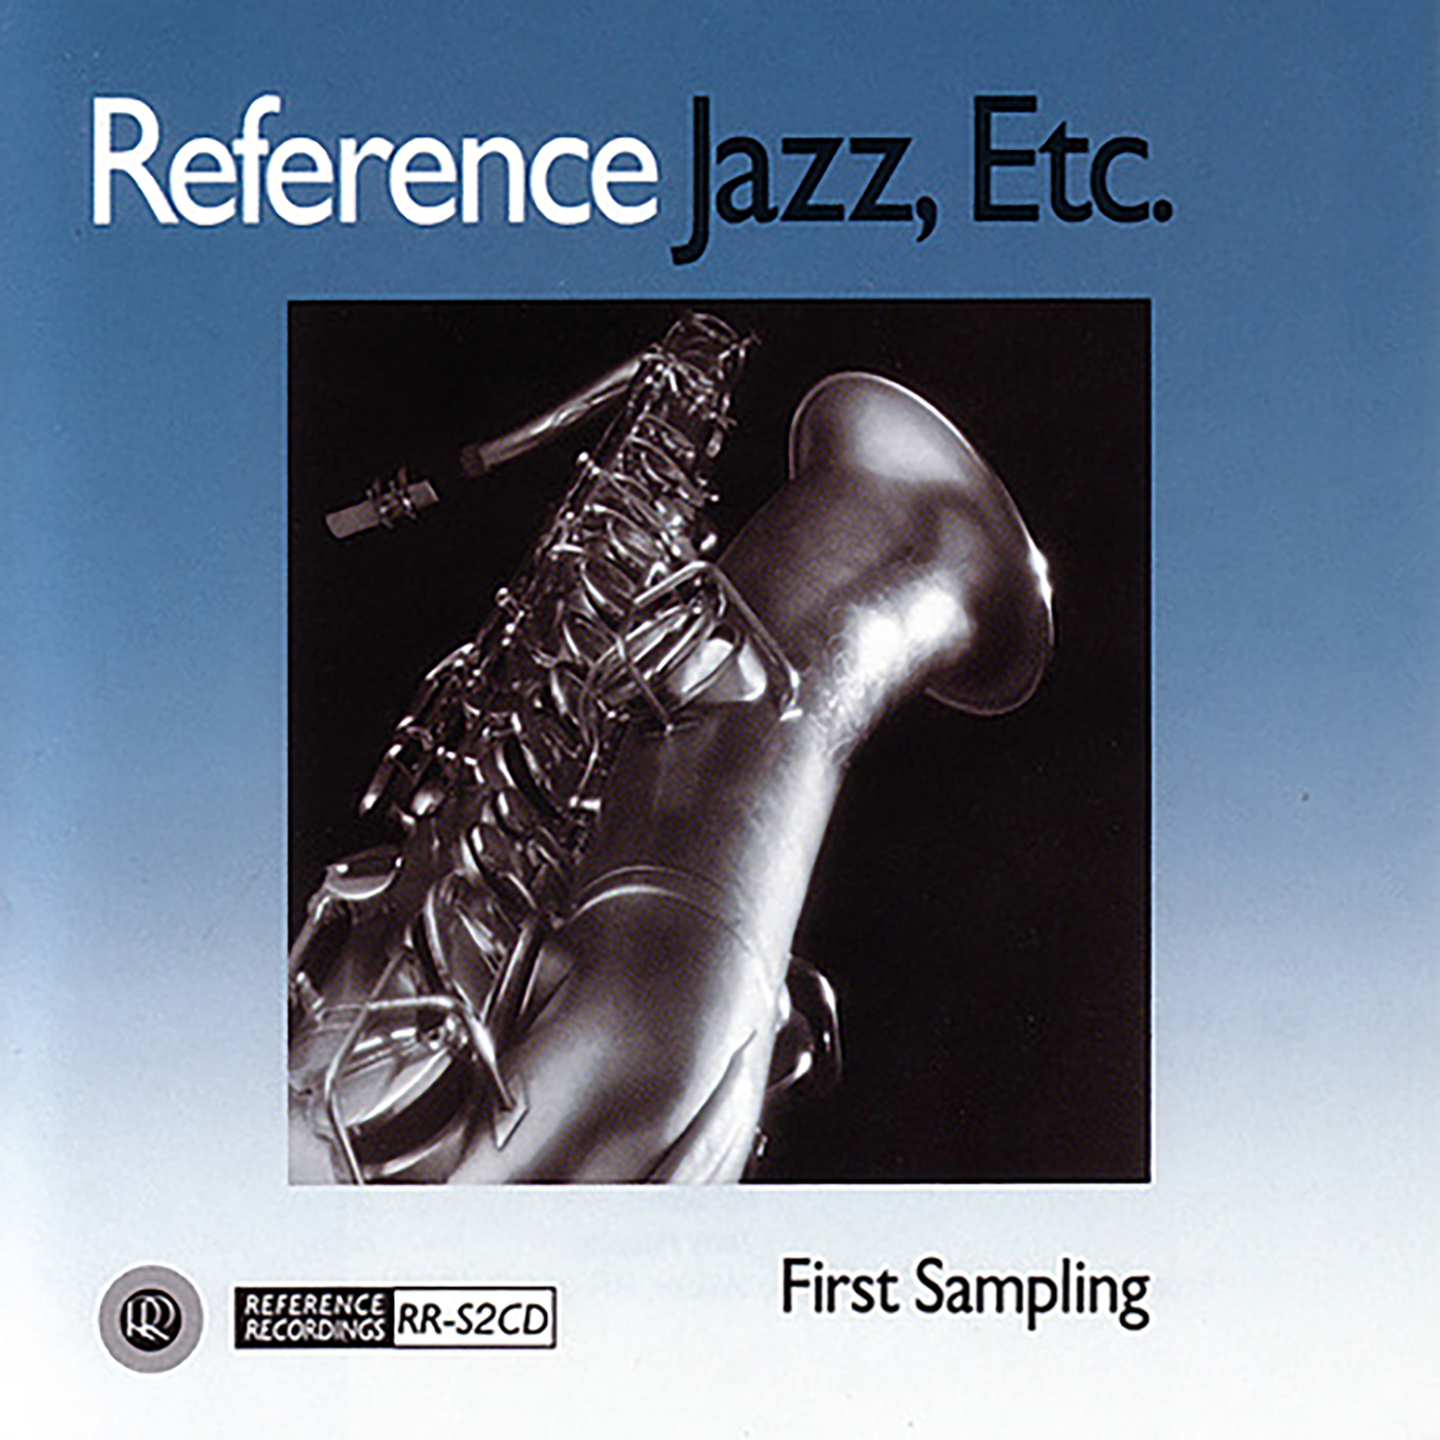 Reference Jazz album cover